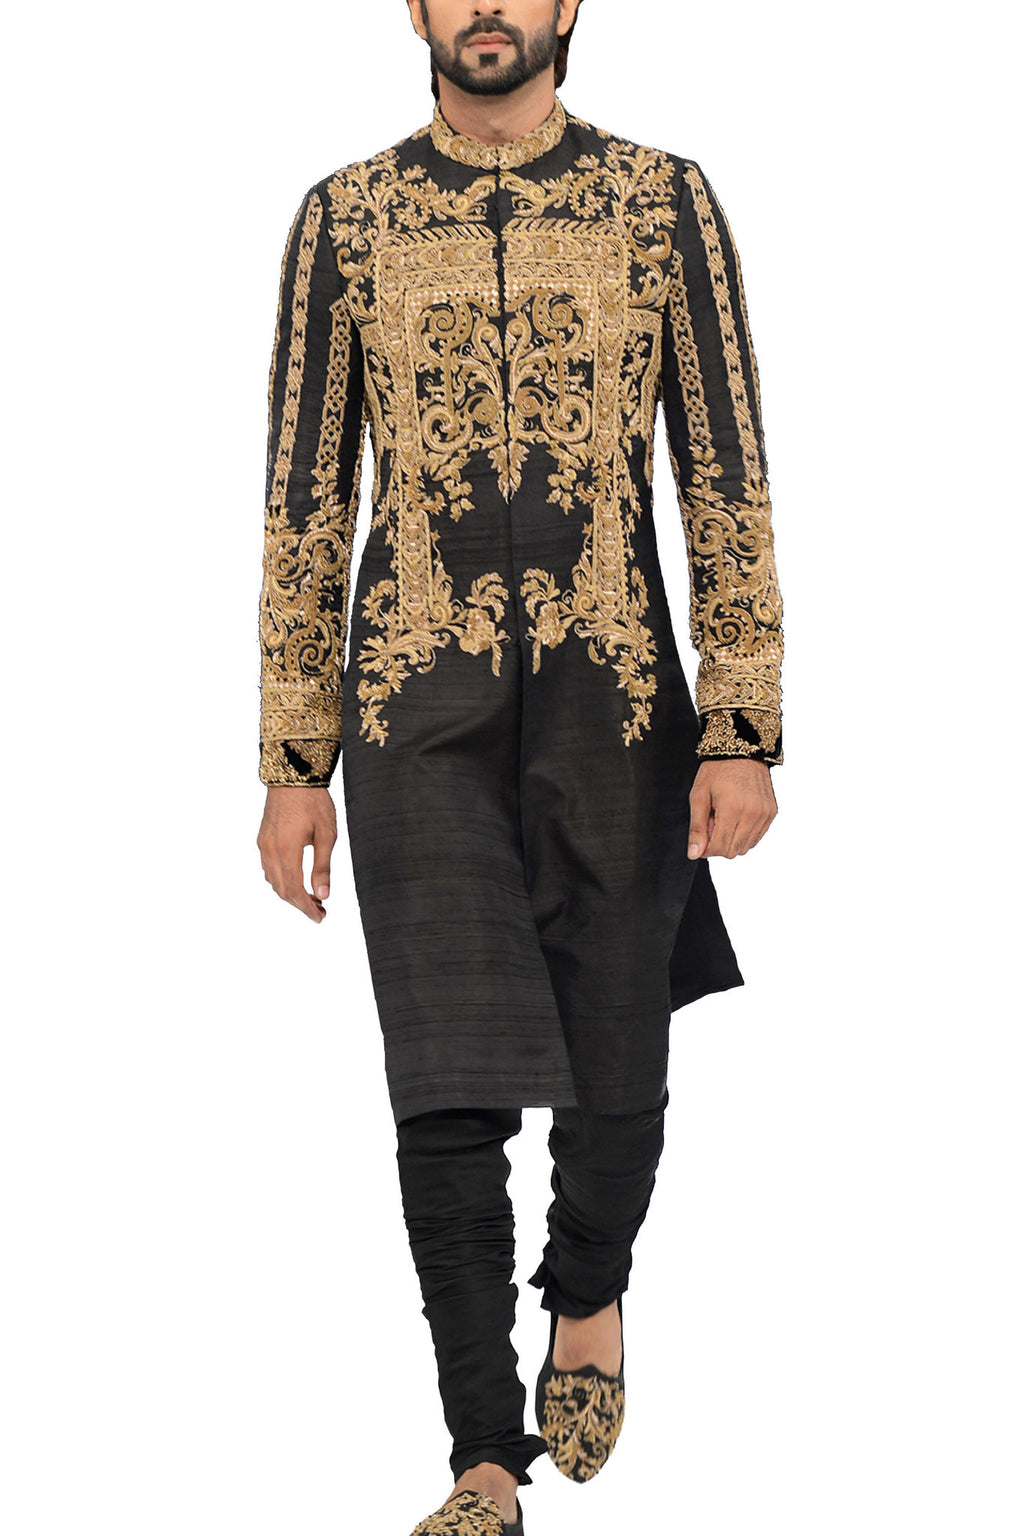 HSY - Black Raw Silk Embellished Sherwani With Trousers